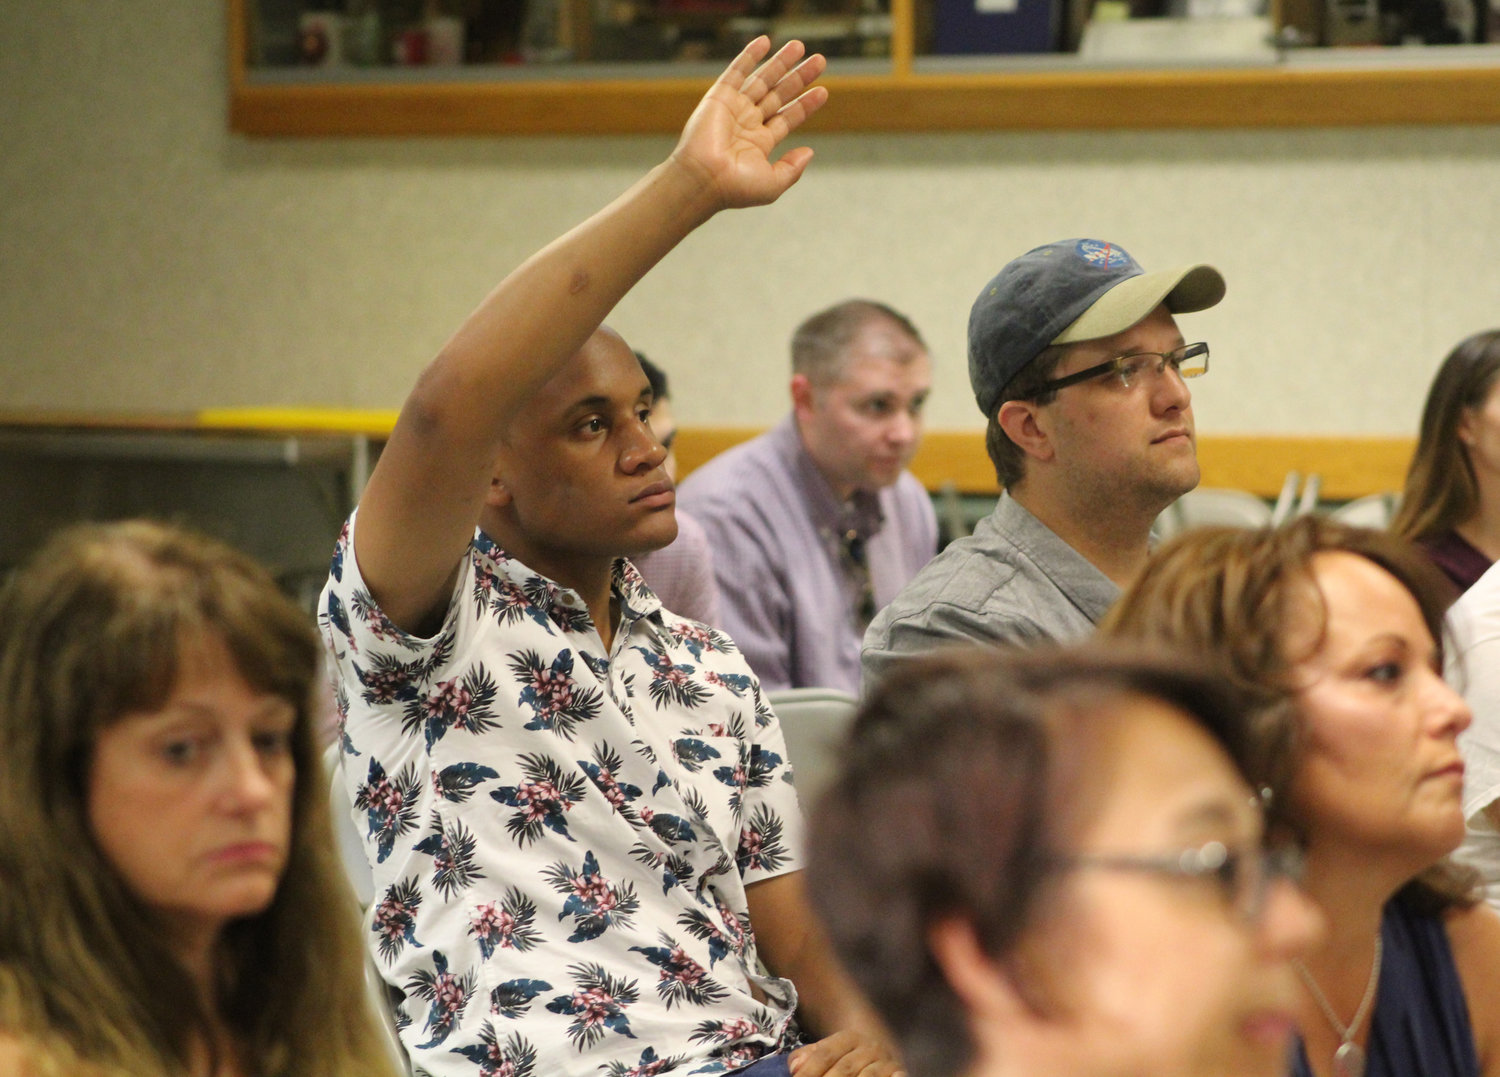 Cole Goodman, of Susquehanna Township, raises his hand during Congressman Scott Perry's town hall at the Hummelstown Fire Department on July 30. Goodman told the Press & Journal that he was allowed into the town hall about three-fourths of the way through the event.